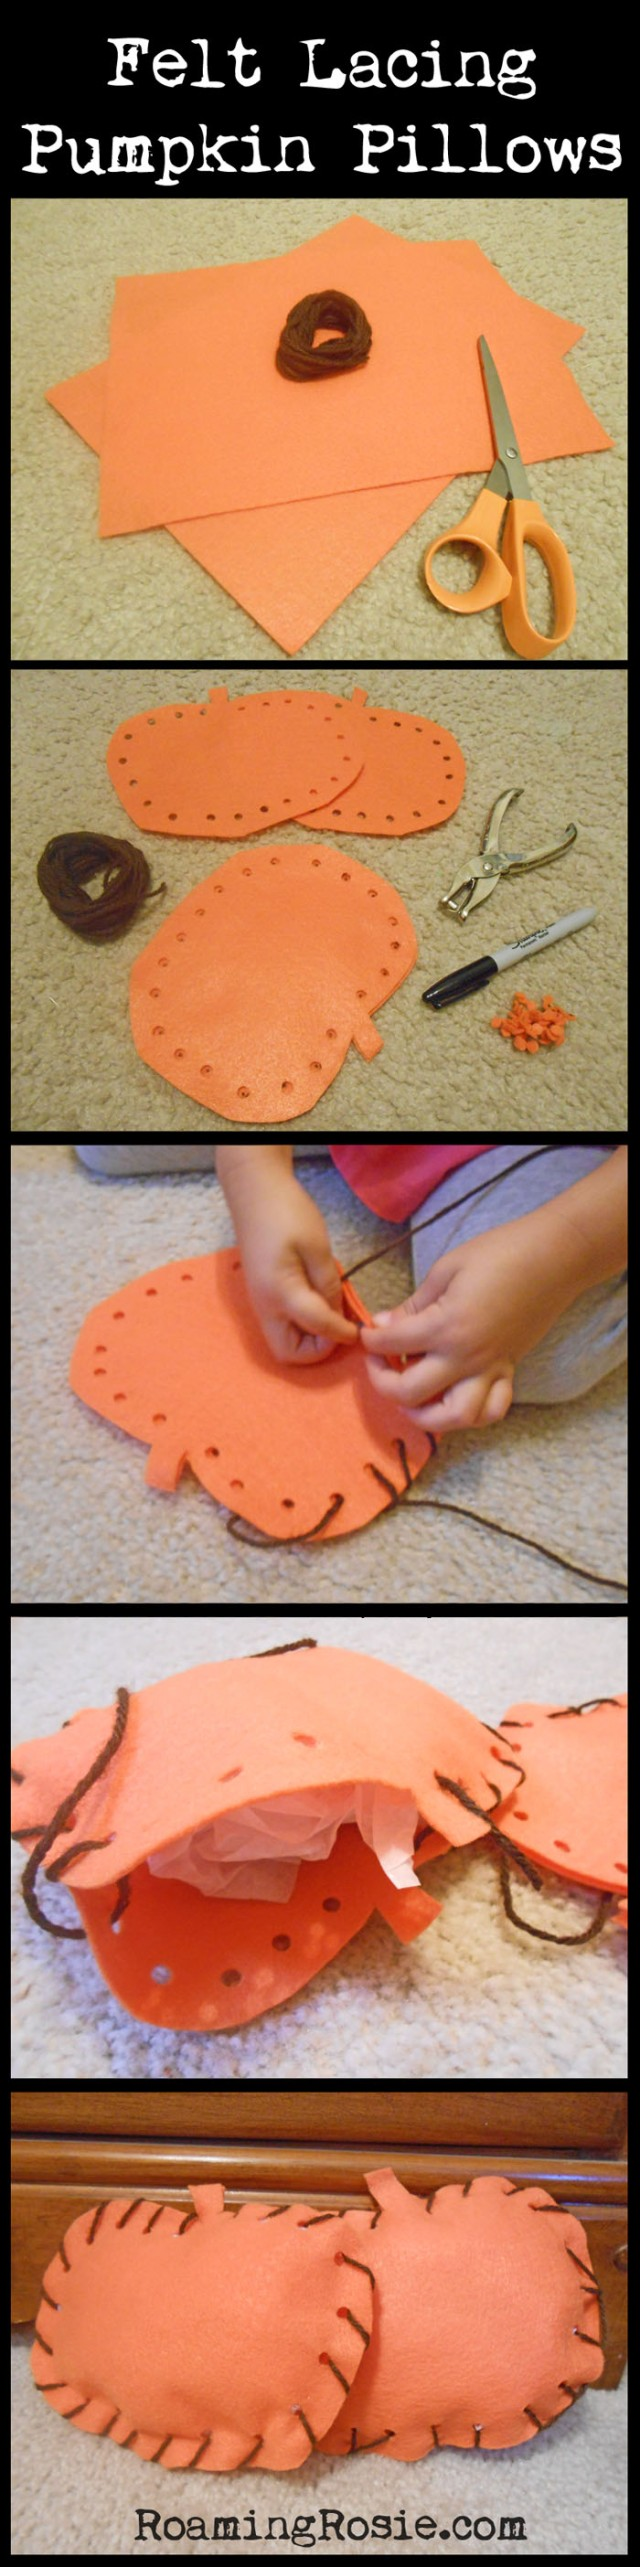 Felt Lacing Pumpkin Pillows